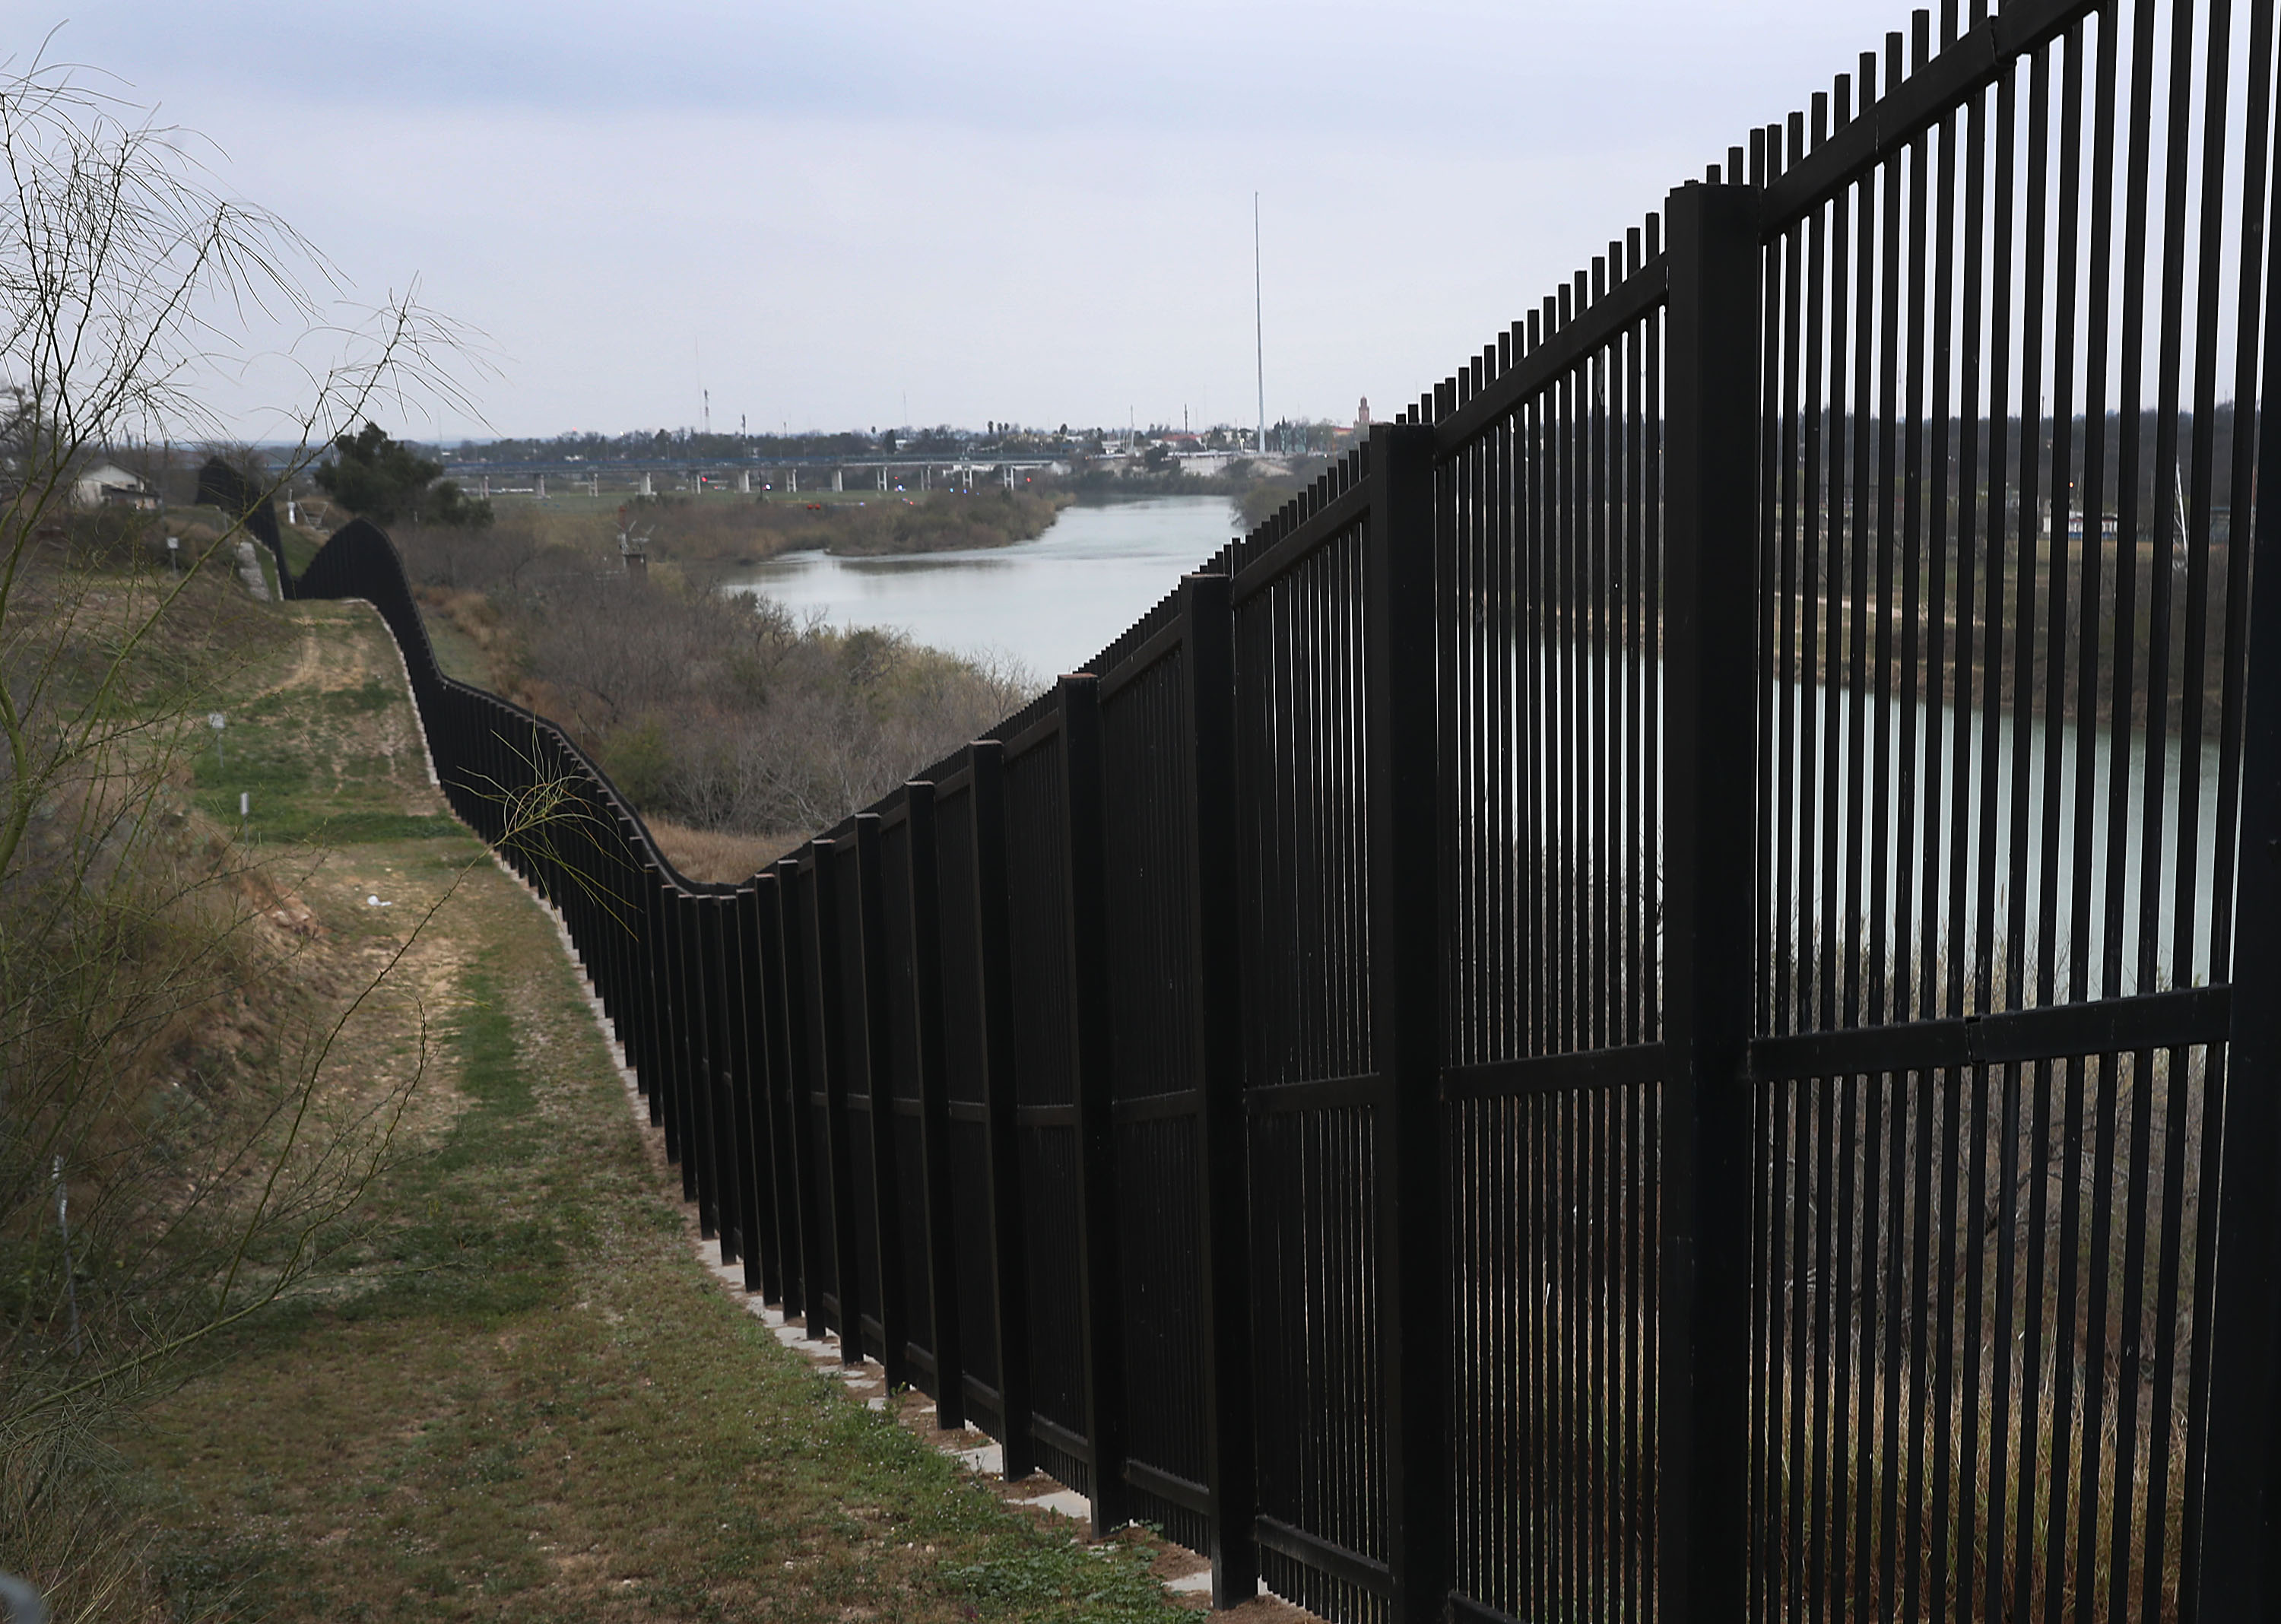 A border fence is seen near the Rio Grande which marks the boundary between Mexico and the United States in Eagle Pass